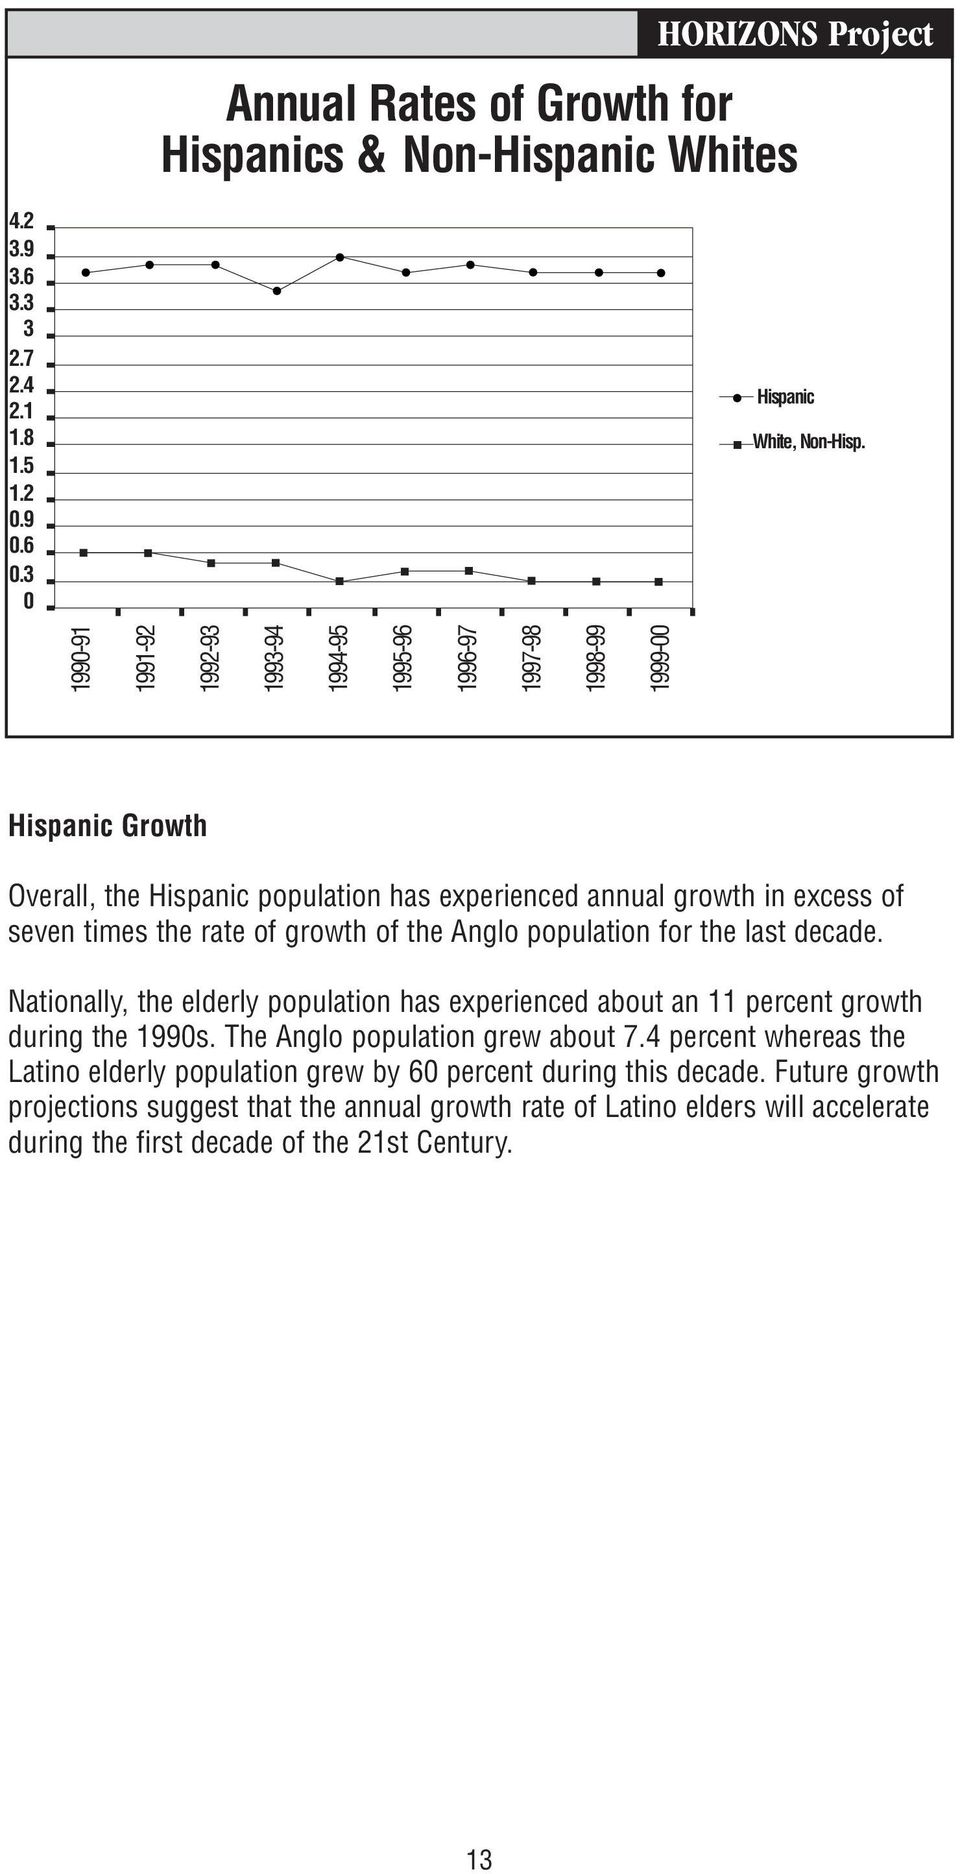 the rate of growth of the Anglo population for the last decade. Nationally, the elderly population has experienced about an 11 percent growth during the 1990s.